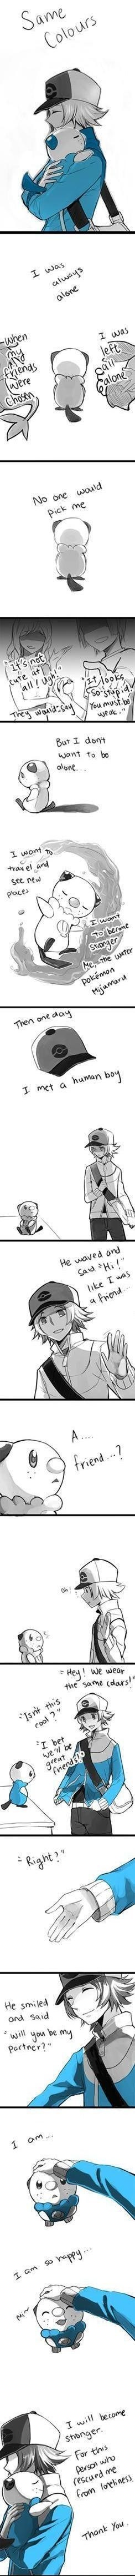 the internets,oshawott,comic,the feels